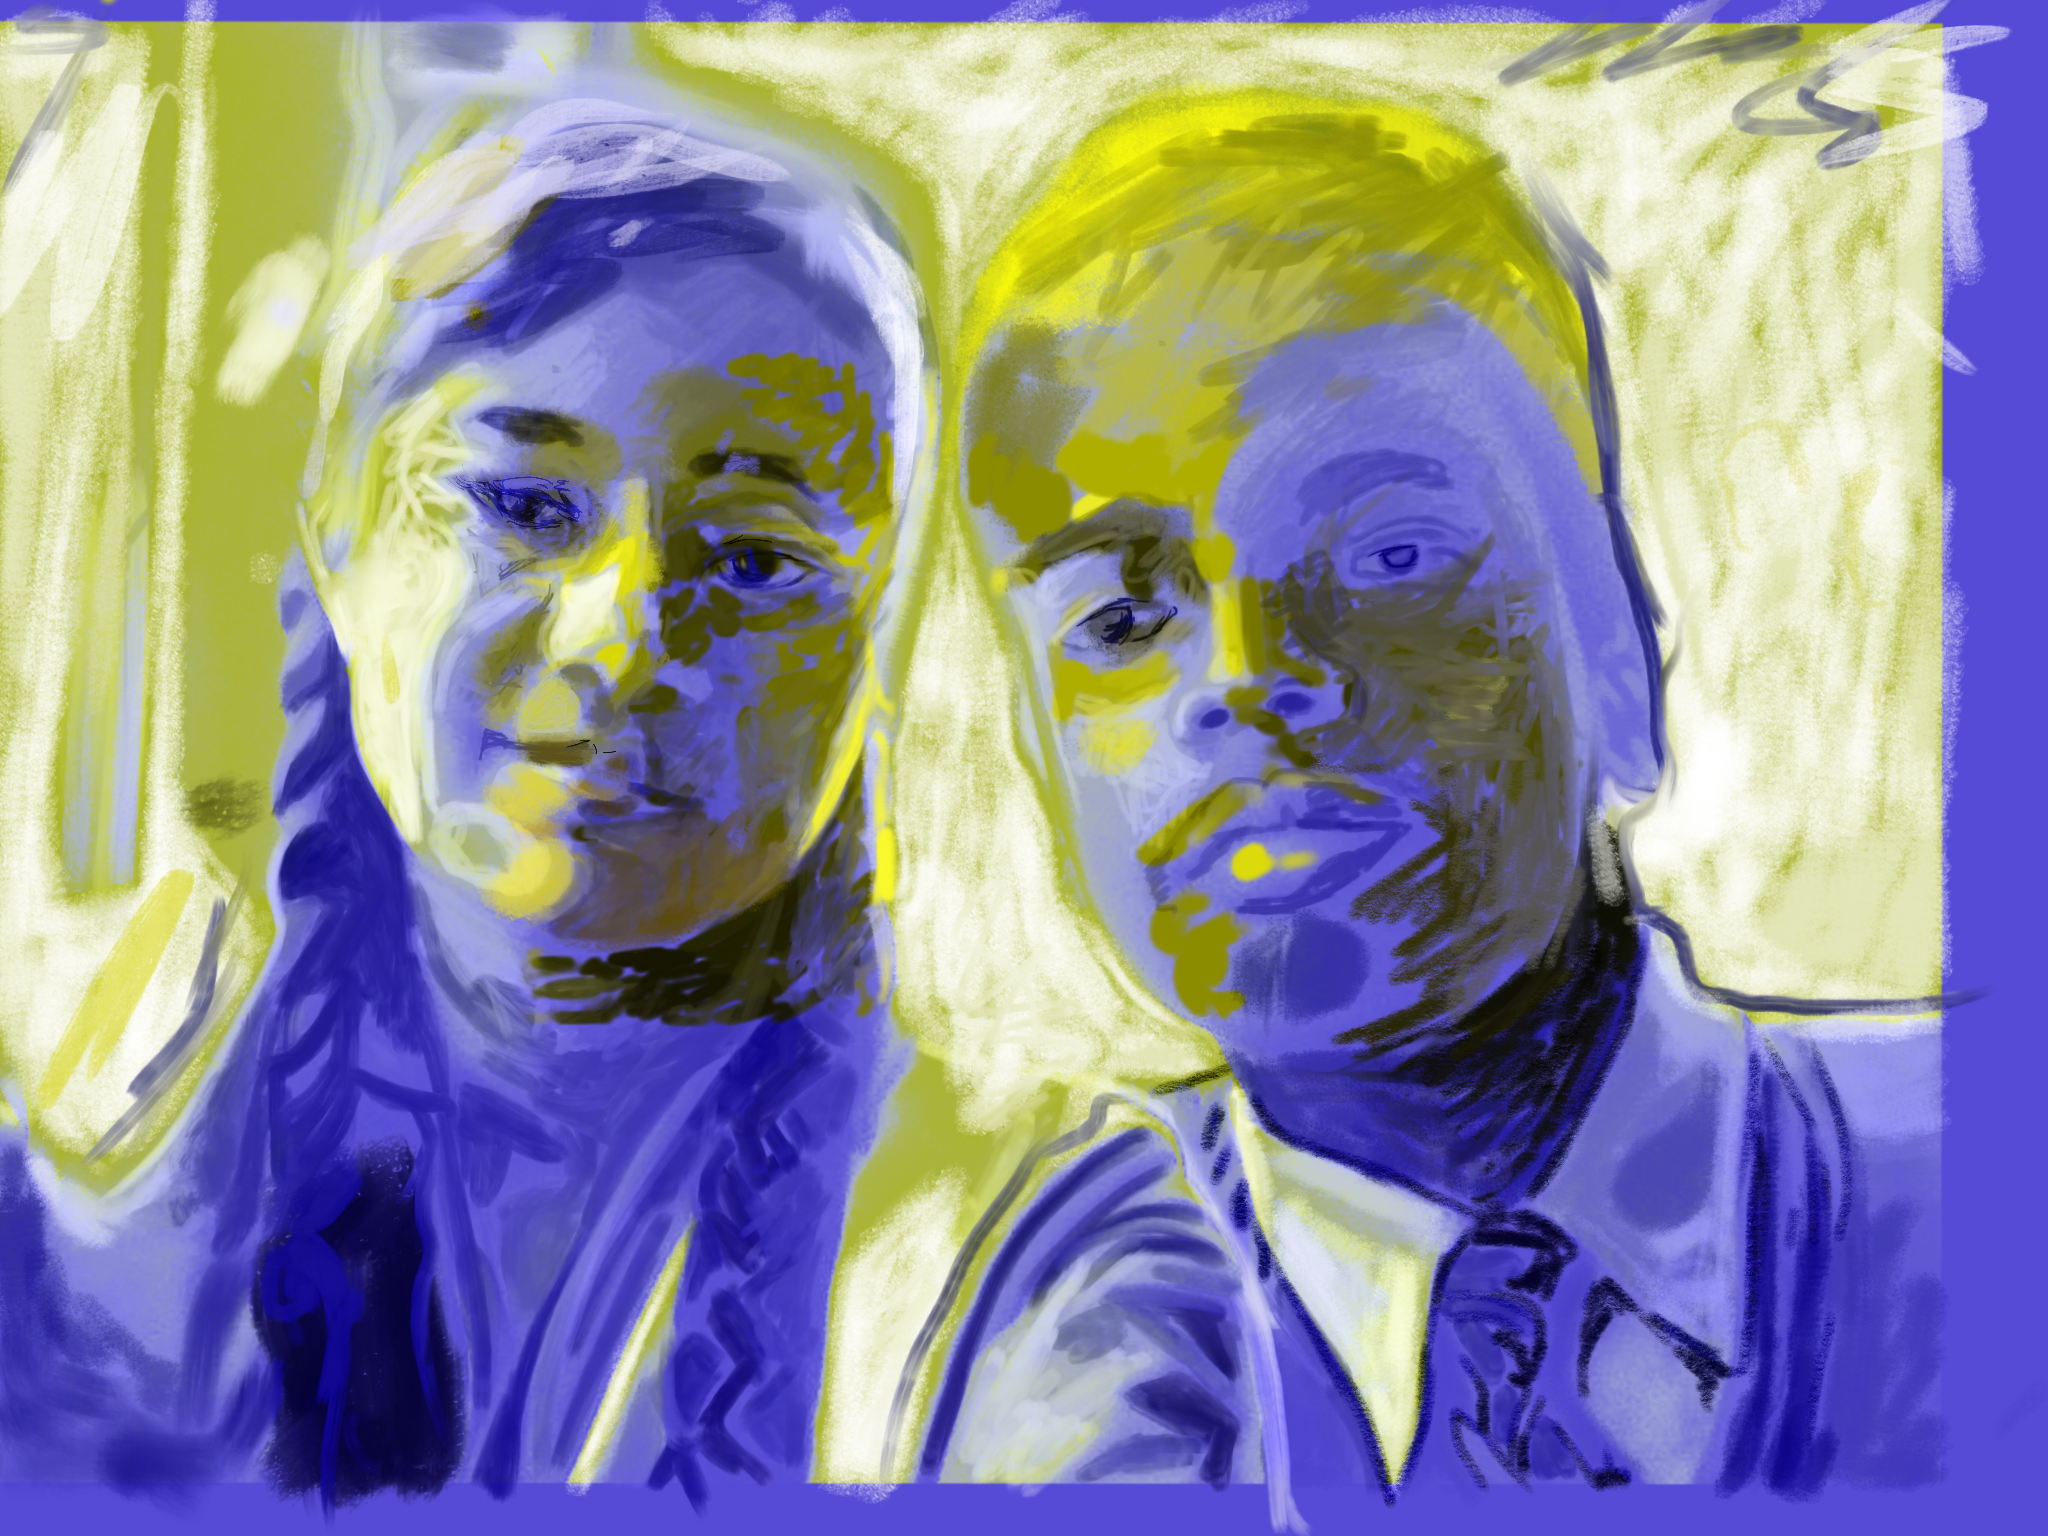 Best Friends, Children Of the Sun  FBSelfie, ProCreate, Pencil 53, Photoshop, iPad, Desktop Digital Image Dimensions Variable © SP/MWW.2015